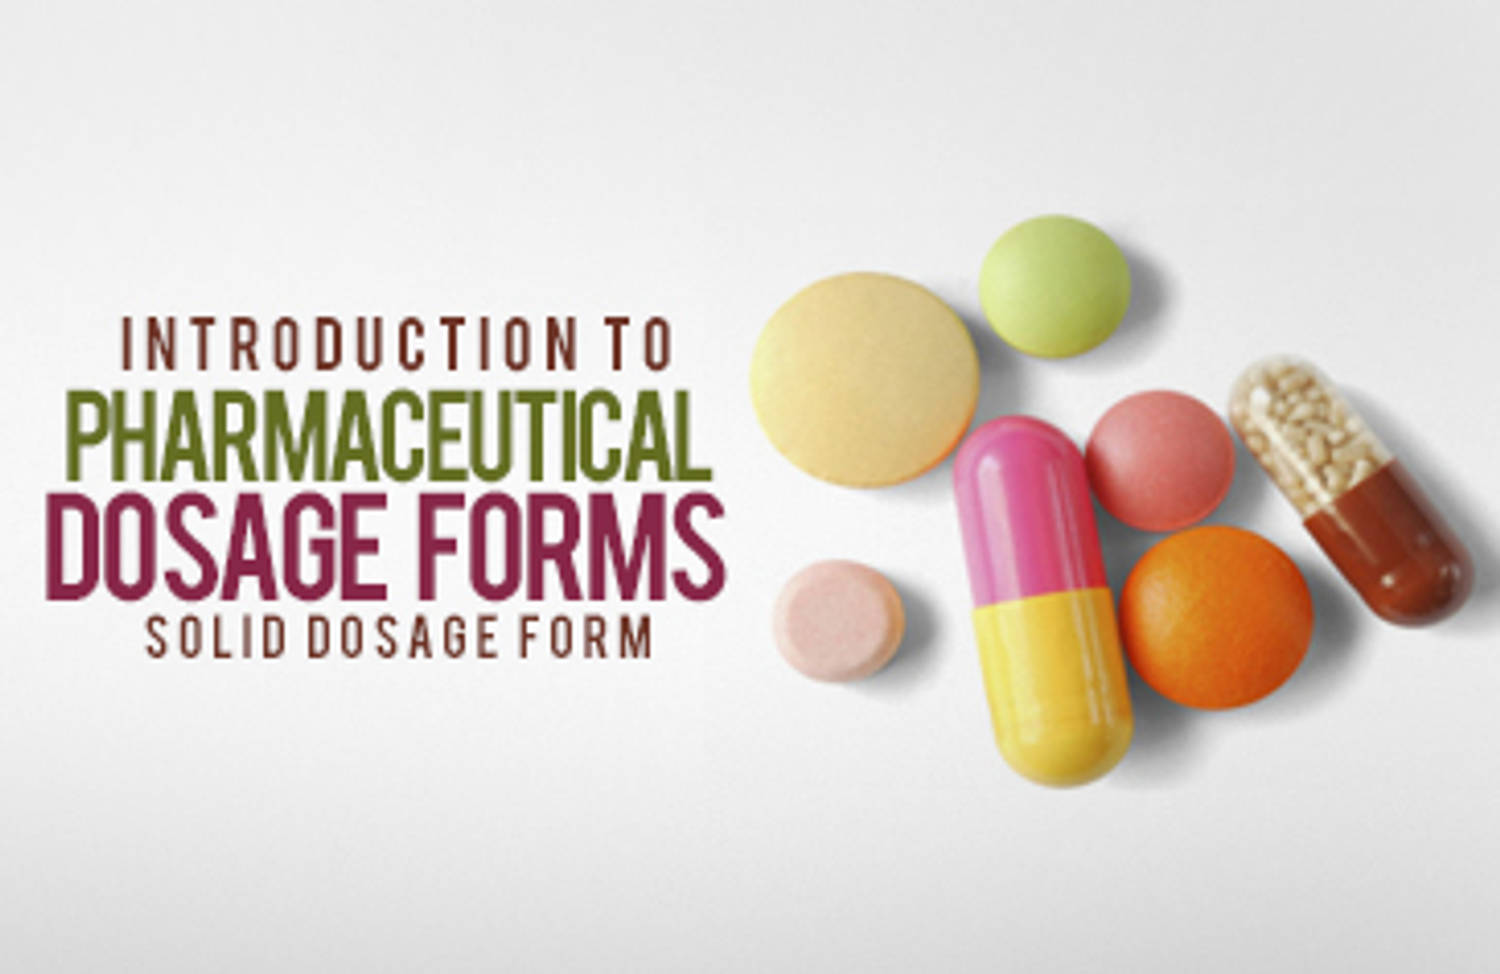 Introduction to Pharmaceutical Dosage Forms - Solid Dosage Form